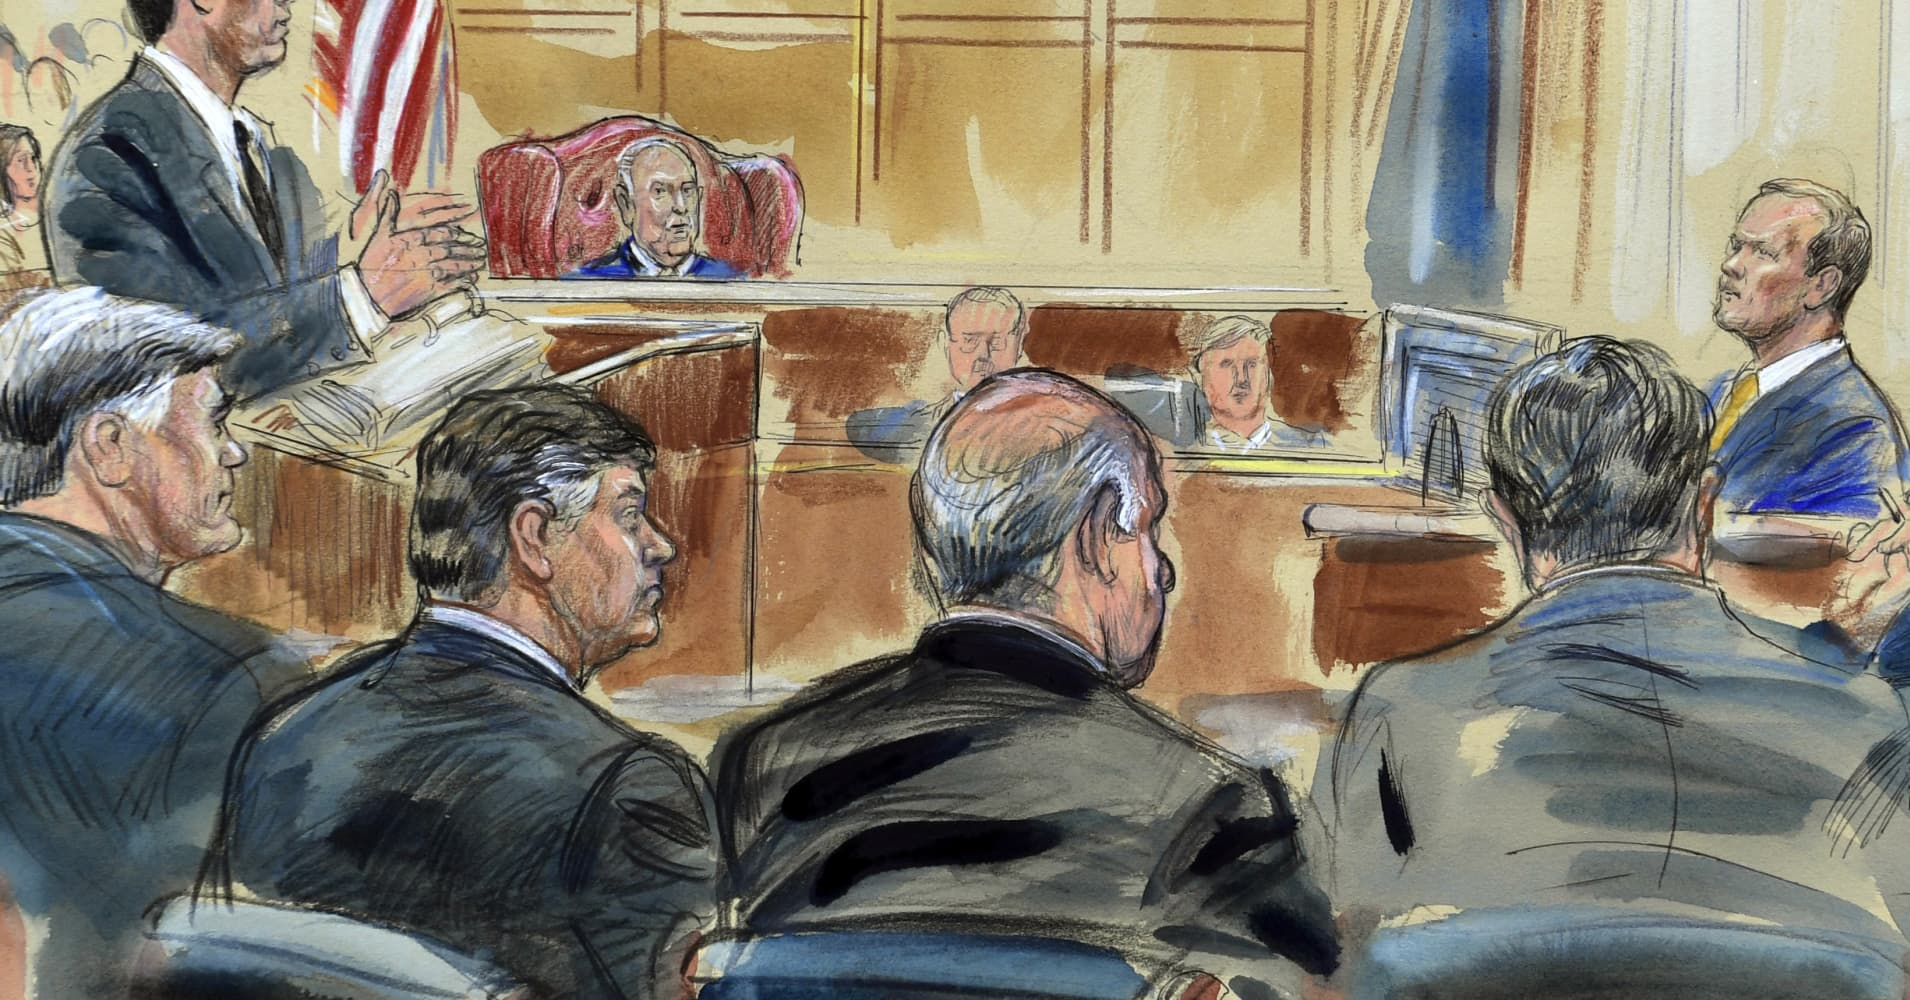 Paul Manafort suggested his banker to be Trump's Secretary of the Army, Rick Gates testifies